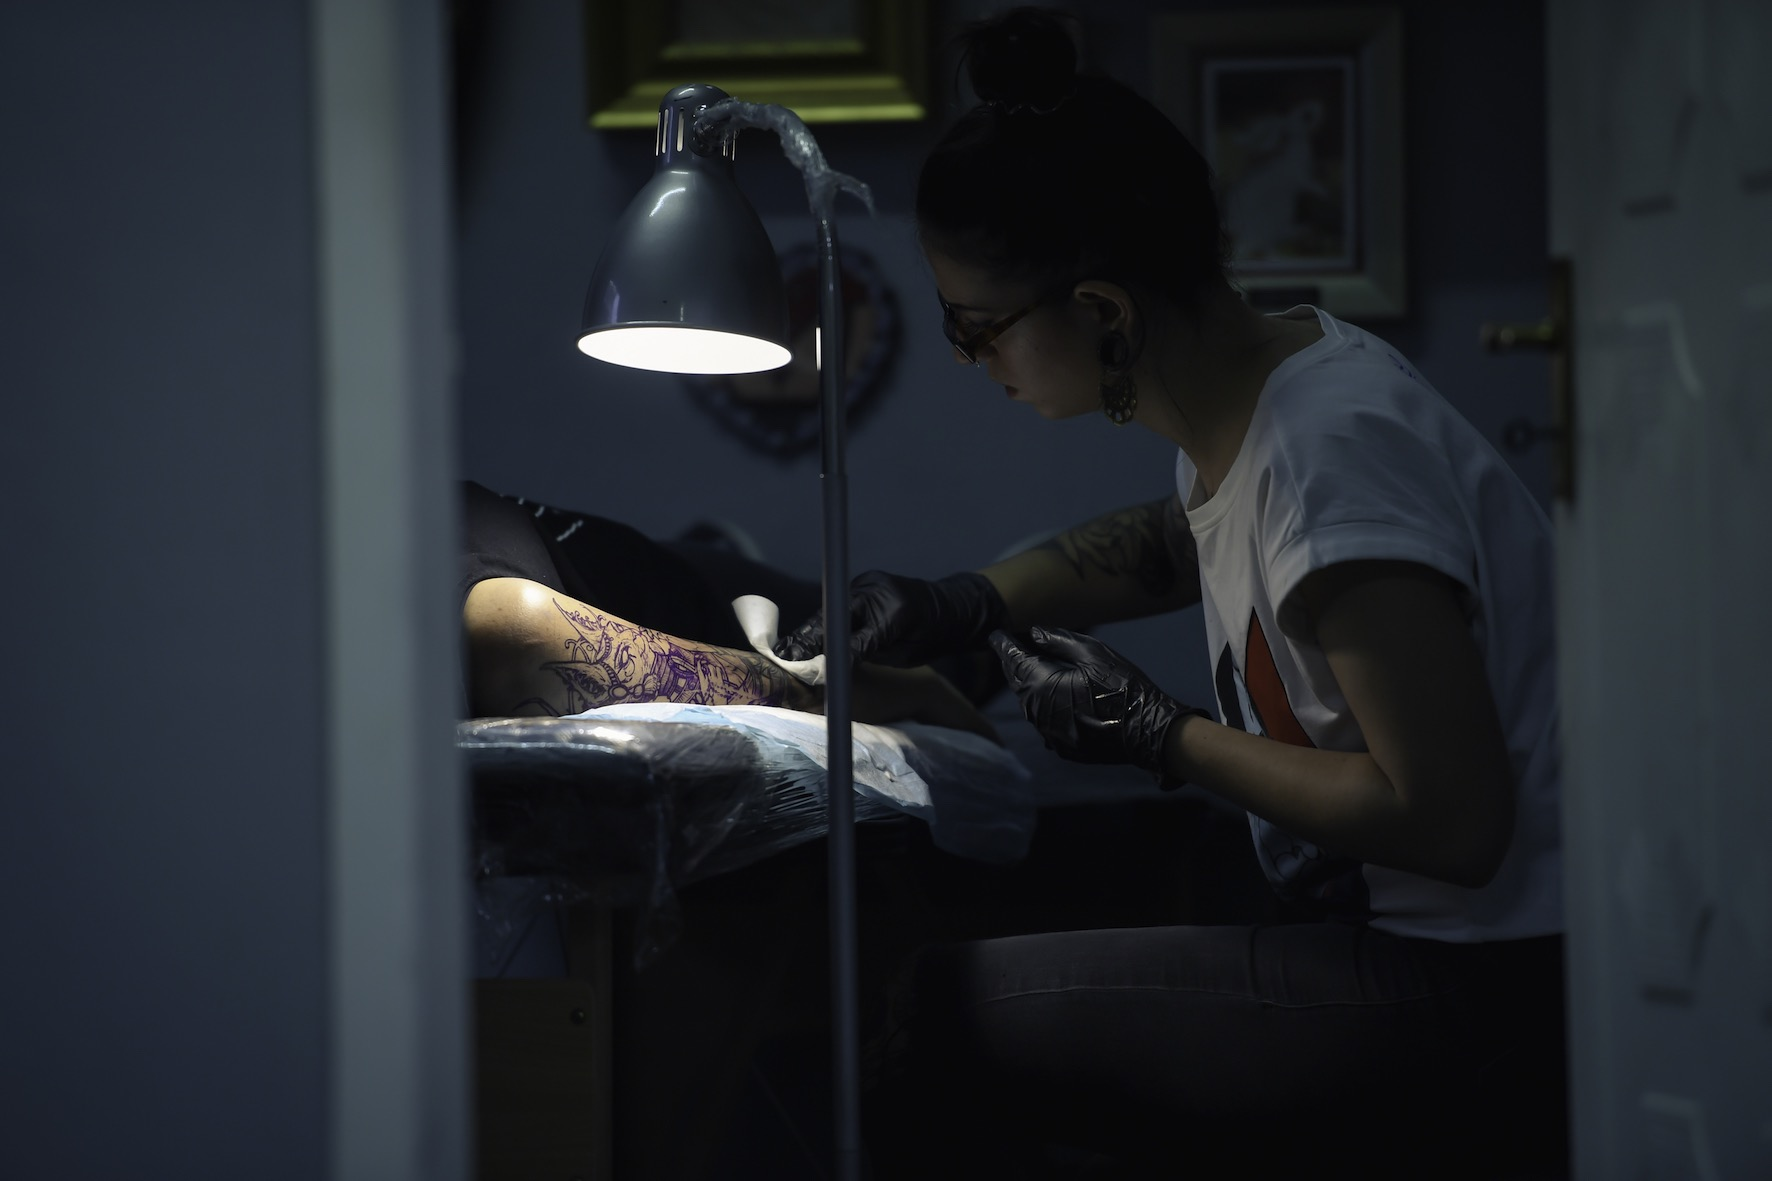 Meet tattoo artist Rocio Todisco working out of The Black Lodge